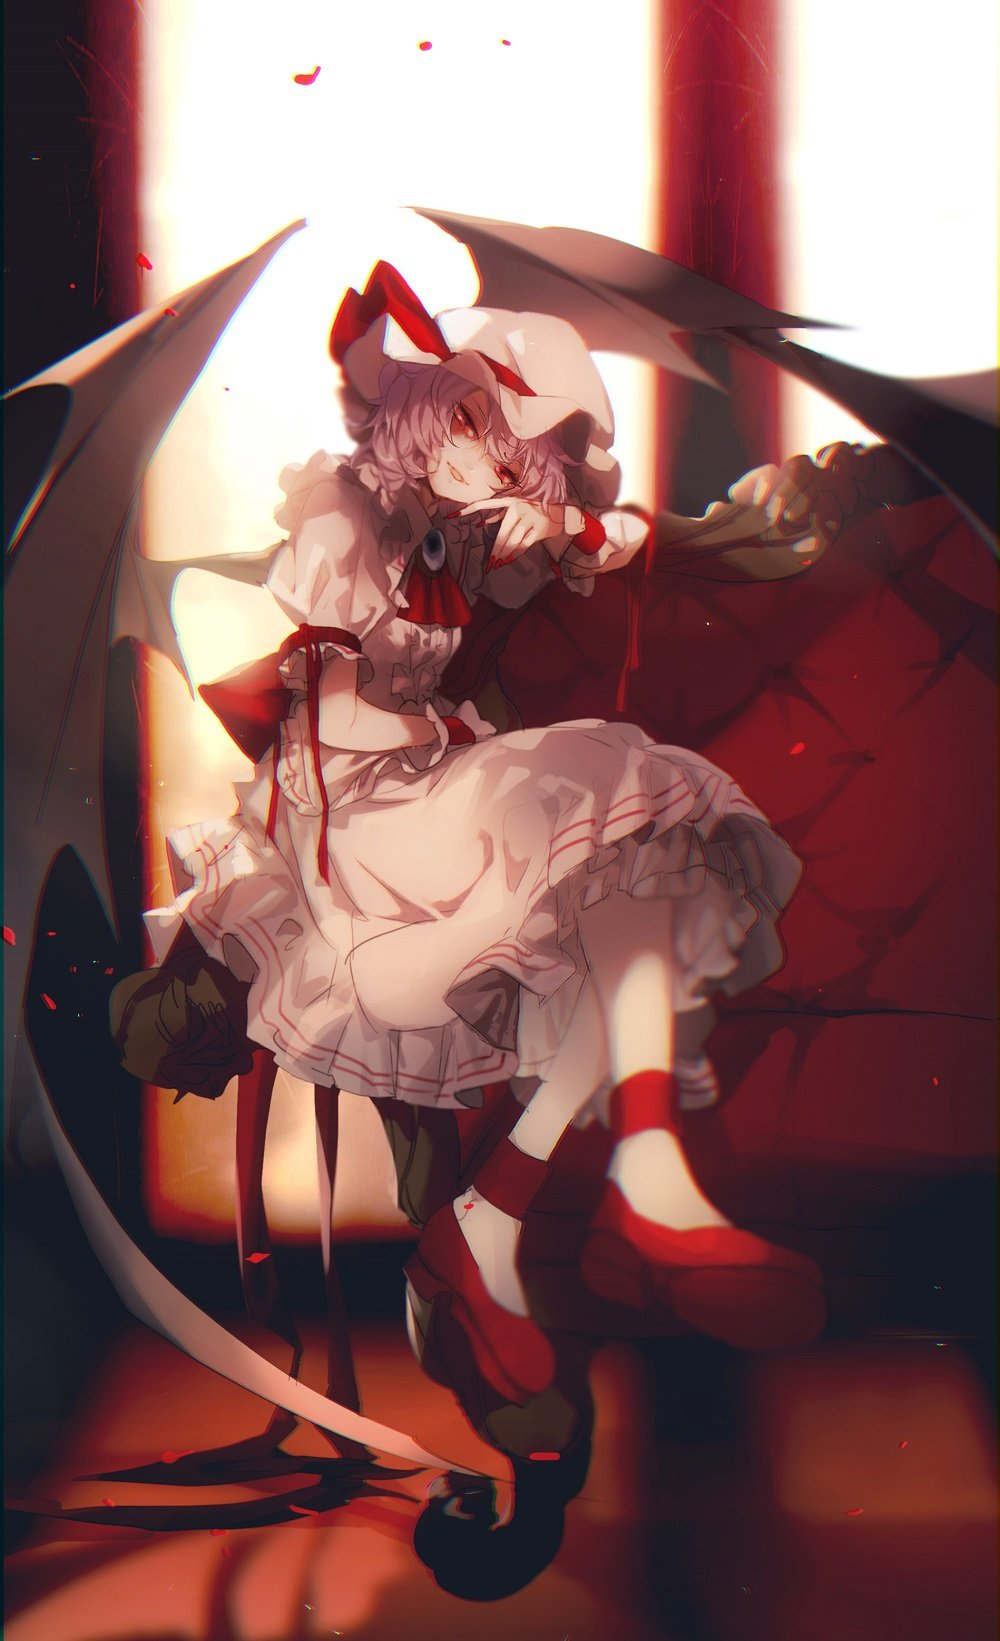 1girl ascot bat_wings blurry brooch couch crossed_legs depth_of_field hat hat_ribbon head_tilt highres indoors jewelry lavender_hair looking_at_viewer mob_cap no-kan petals red_eyes red_ribbon red_shoes remilia_scarlet ribbon rose_petals shirt shoes short_hair sitting skirt solo touhou wings